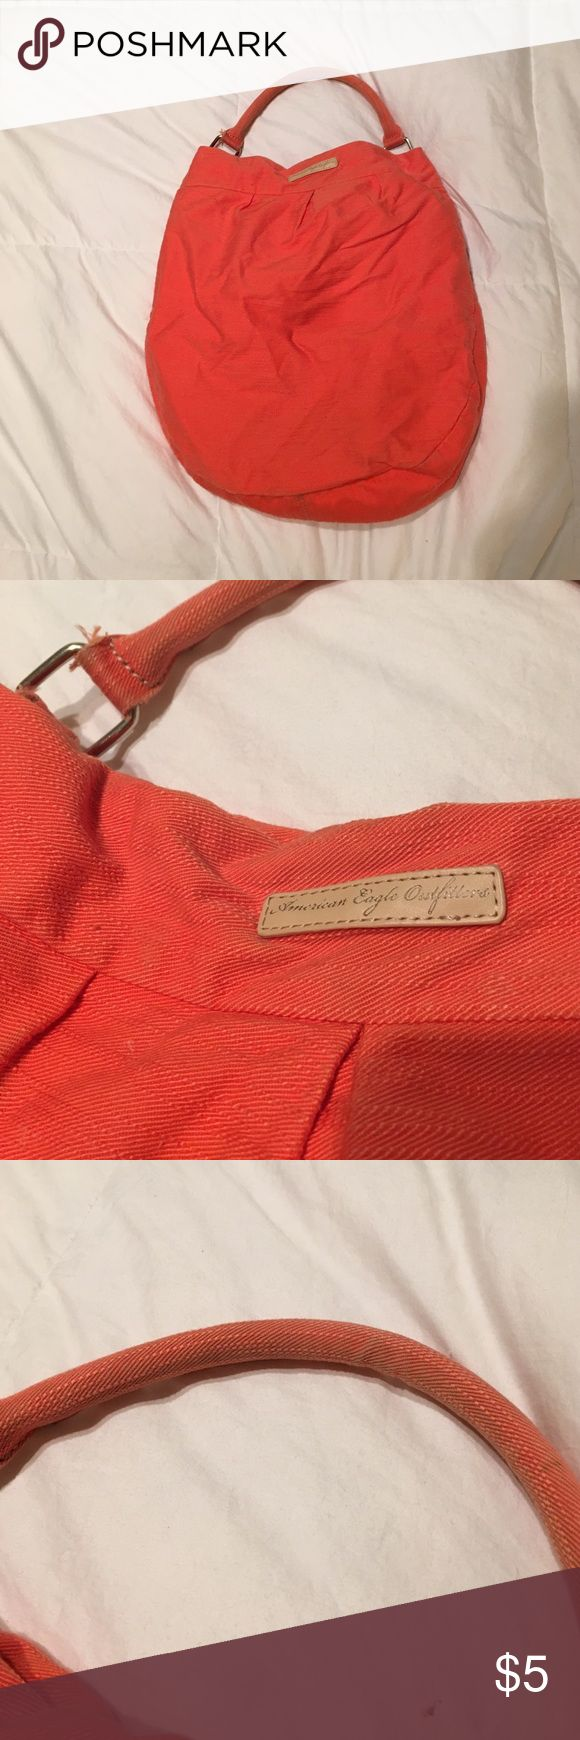 """American Eagle tote purse Orange American Eagle tore or purse. Has definite ware including pulling, inside has pen stains, and handle being dirty. Have not tried washing it. Inside has zipper and two small pockets. Closure is magnetic. Perfect pool bag. Size is approximate because it's not a symmetrical perfectly shaped bag. Opening is about 9""""L and as wide as 10"""" opening. American Eagle Outfitters Bags Totes"""